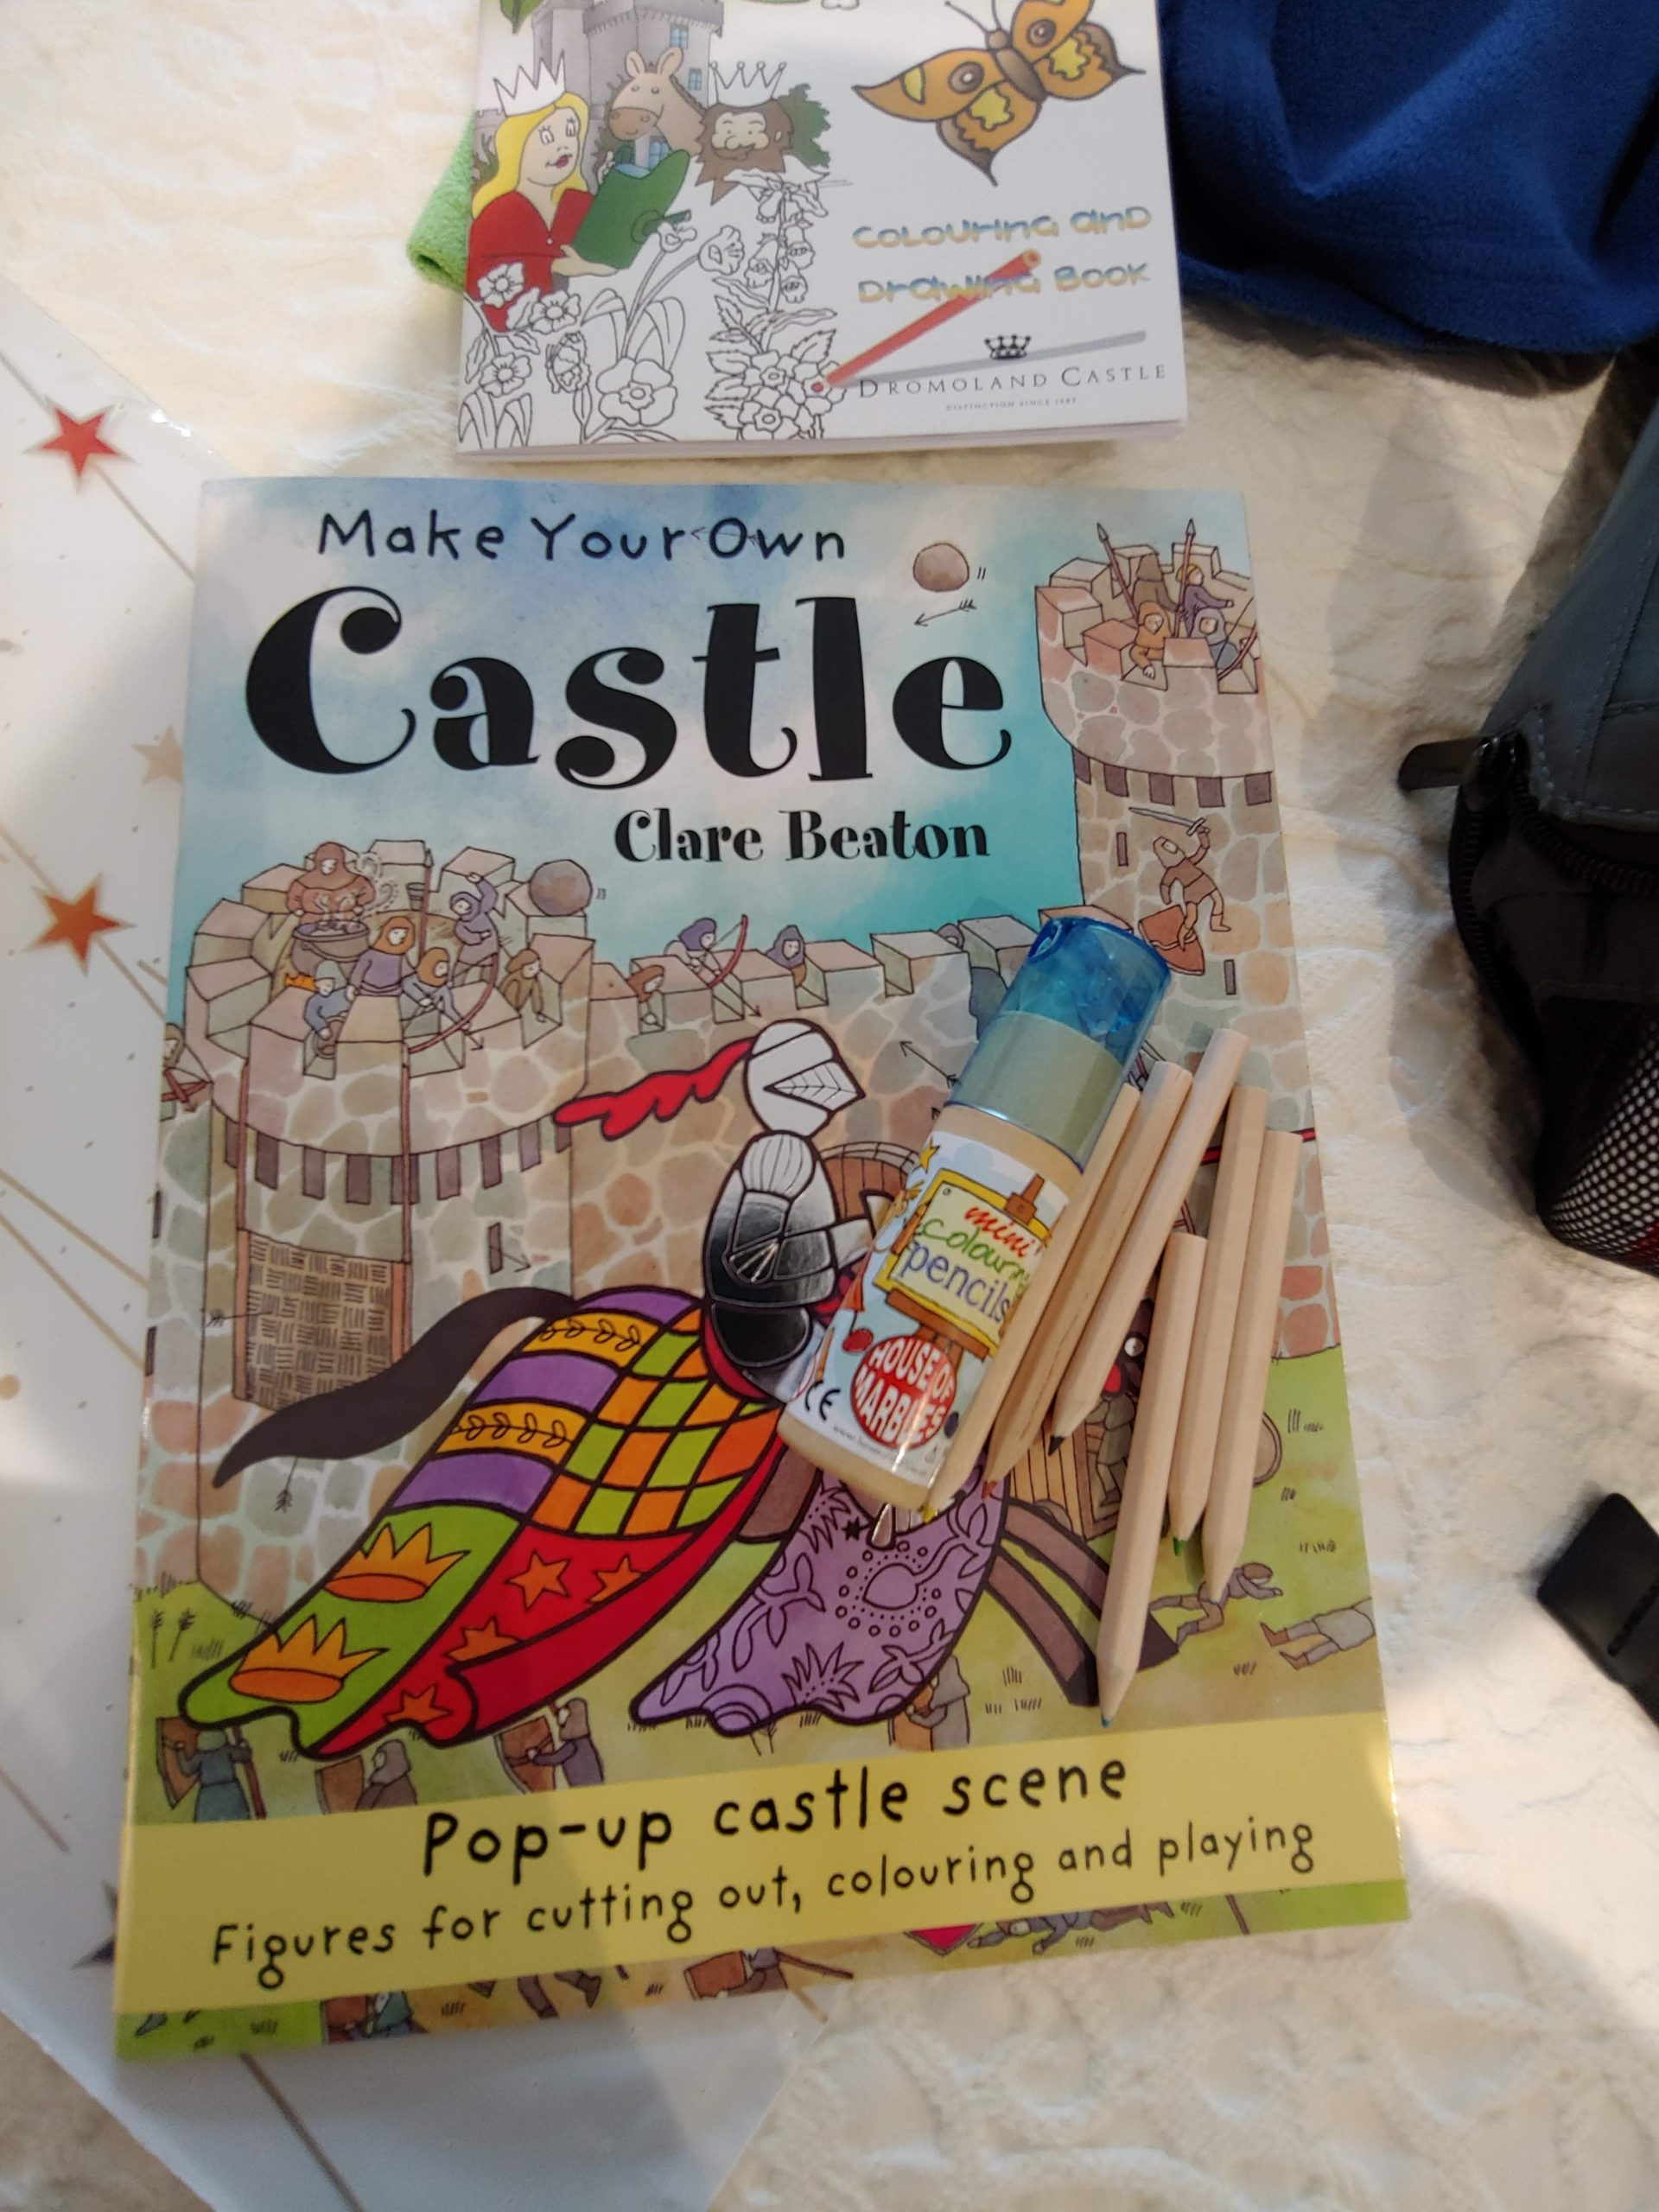 coloring book at check in